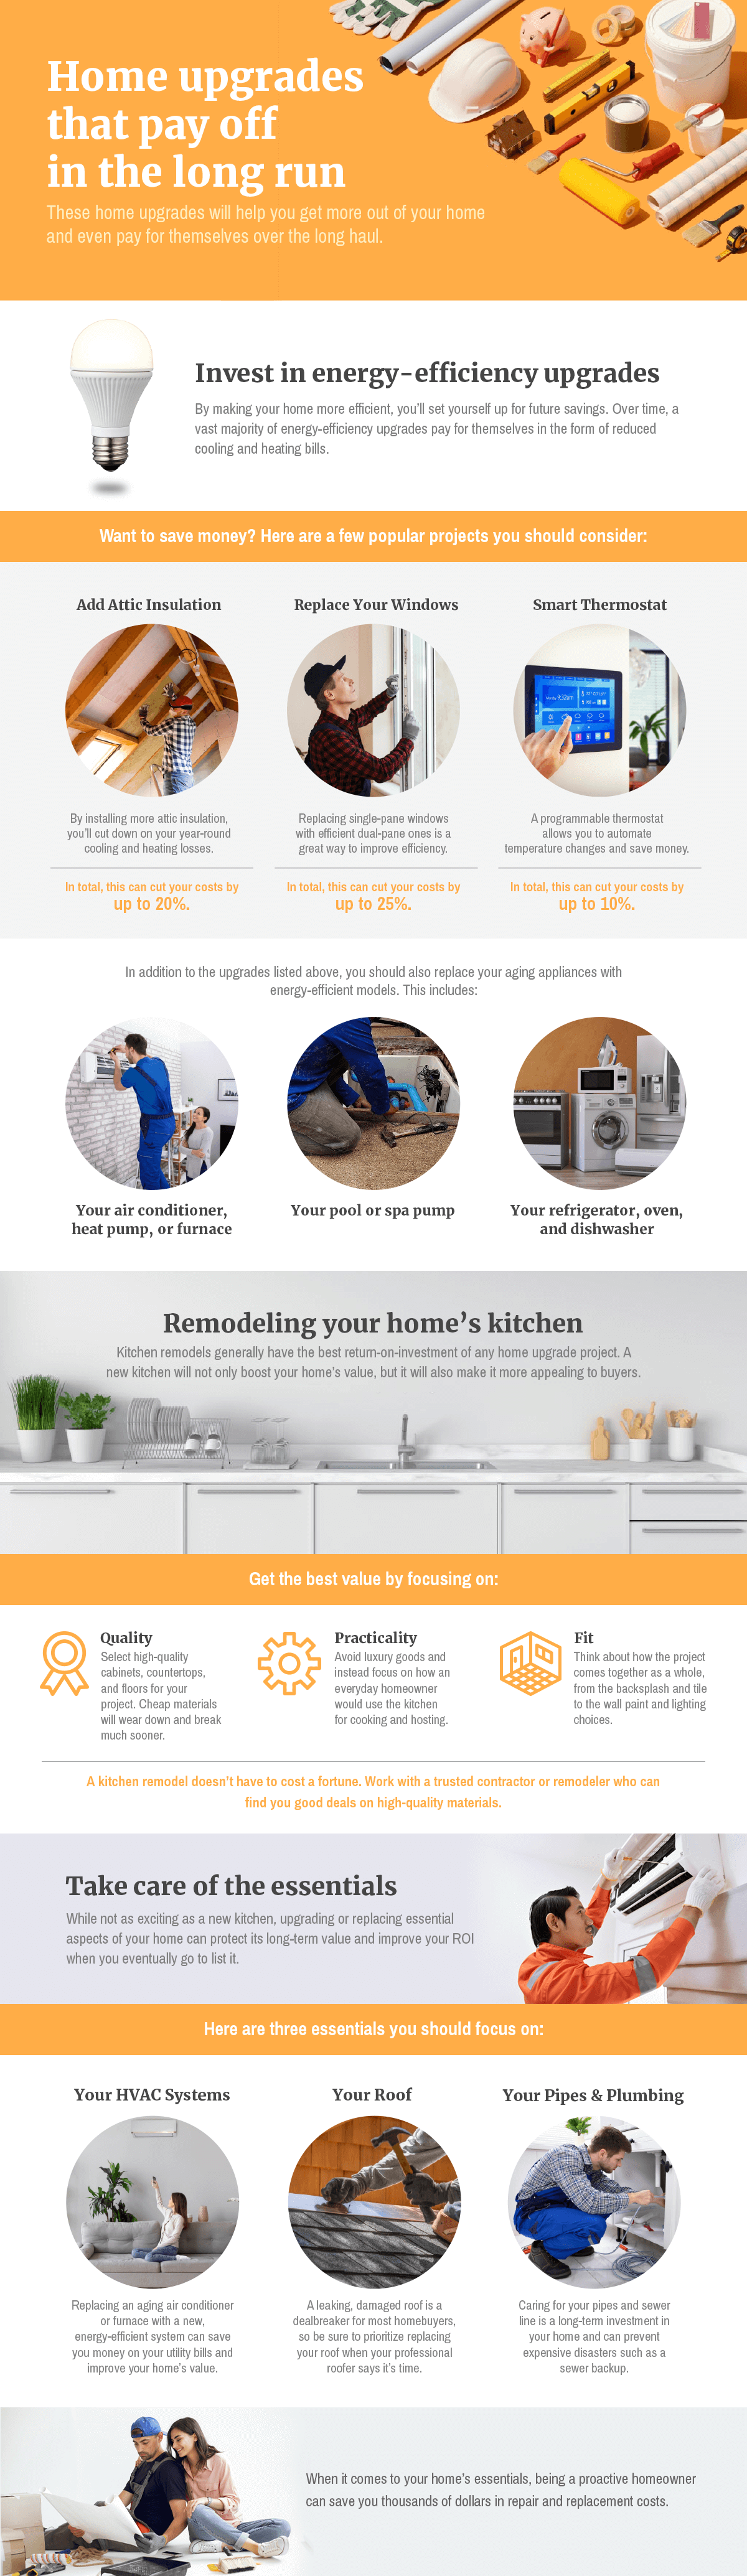 home upgrades that pay off